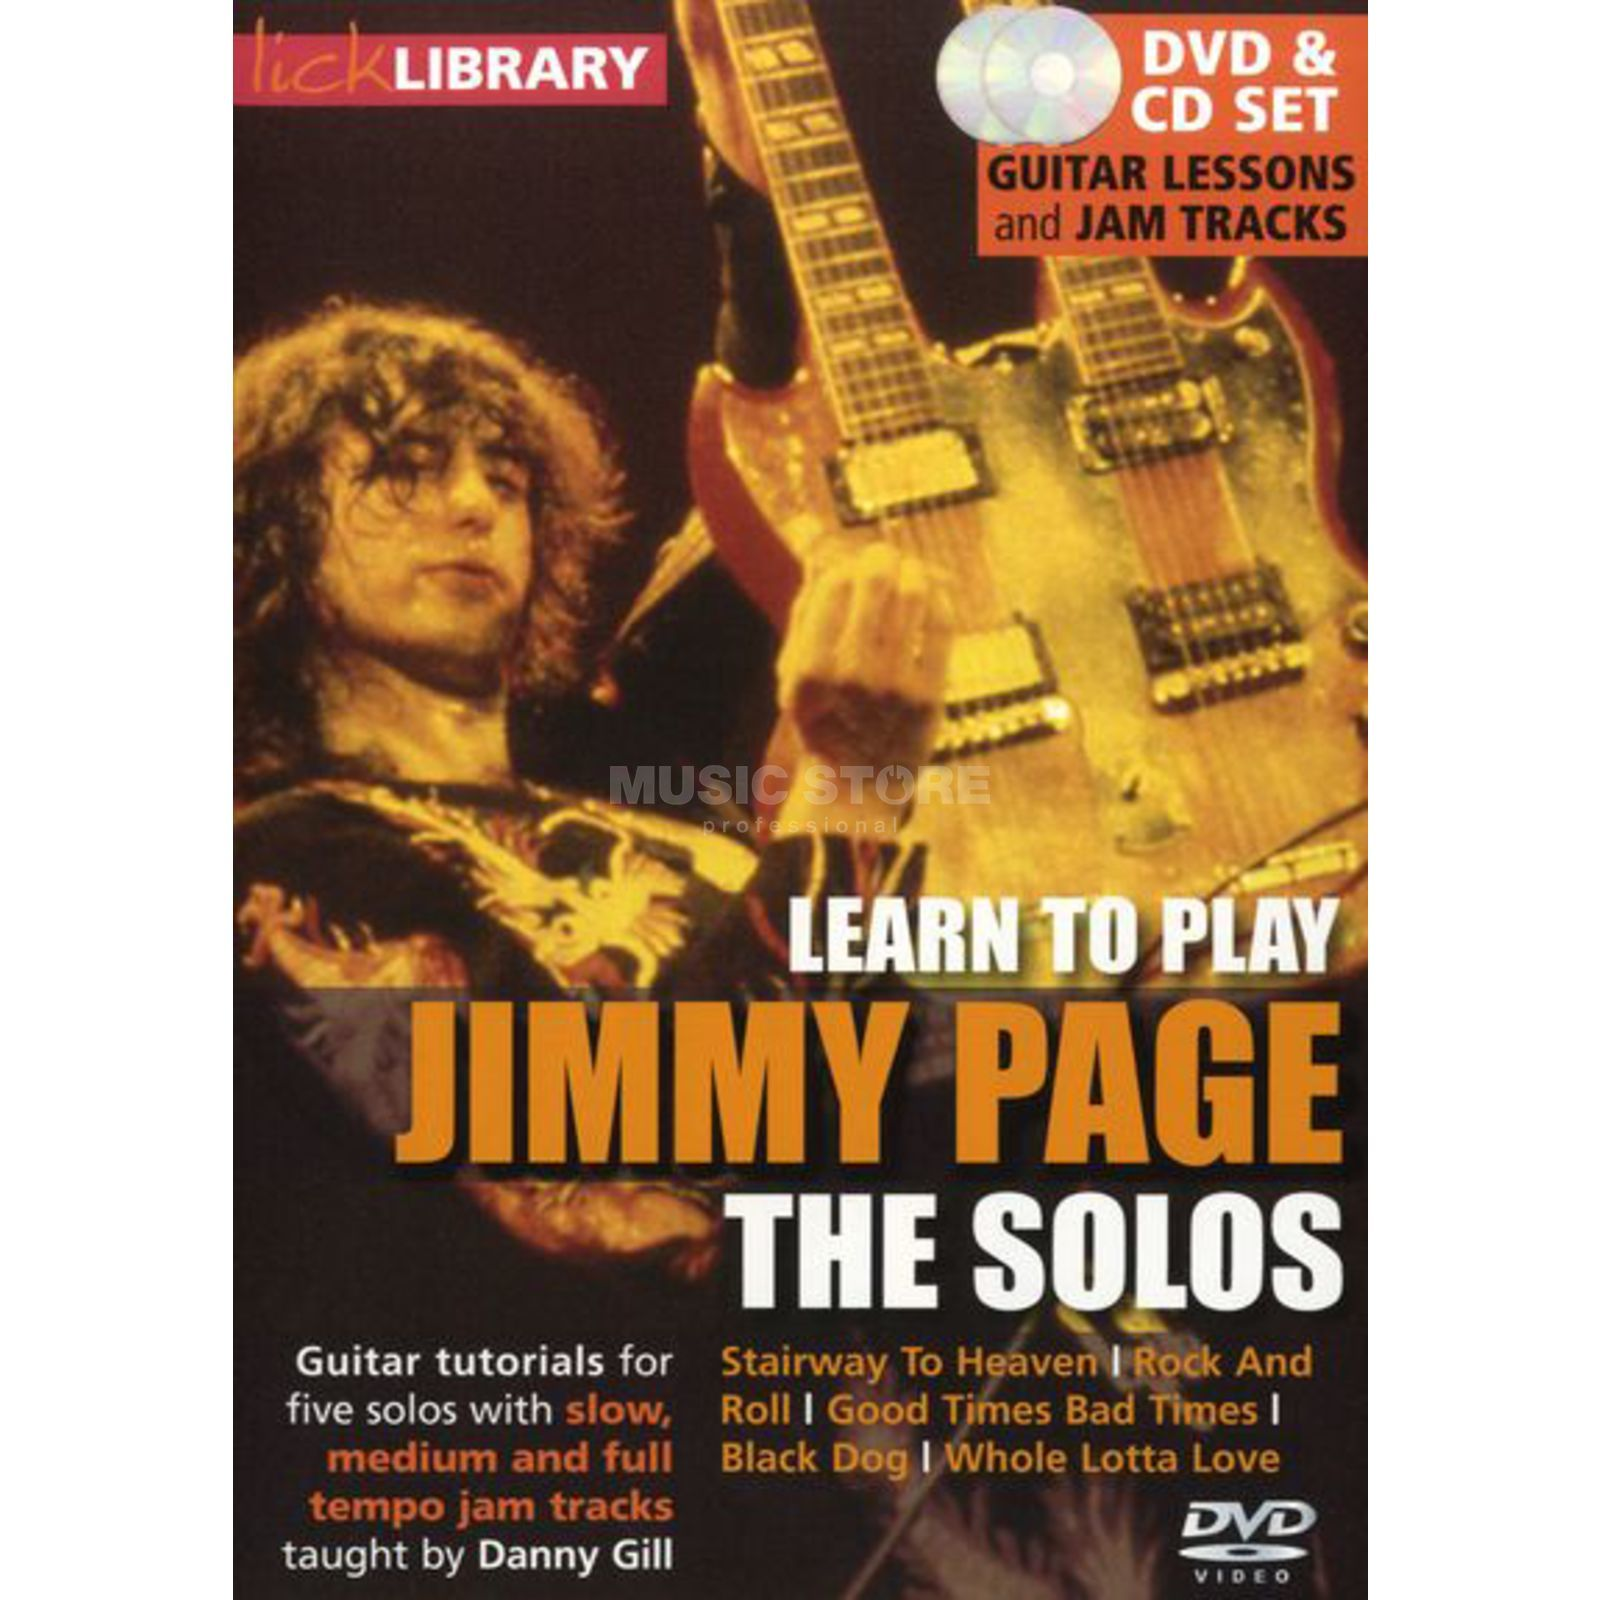 Roadrock International Lick Library: Learn To Play Jimmy Page: The Solos DVD Produktbillede